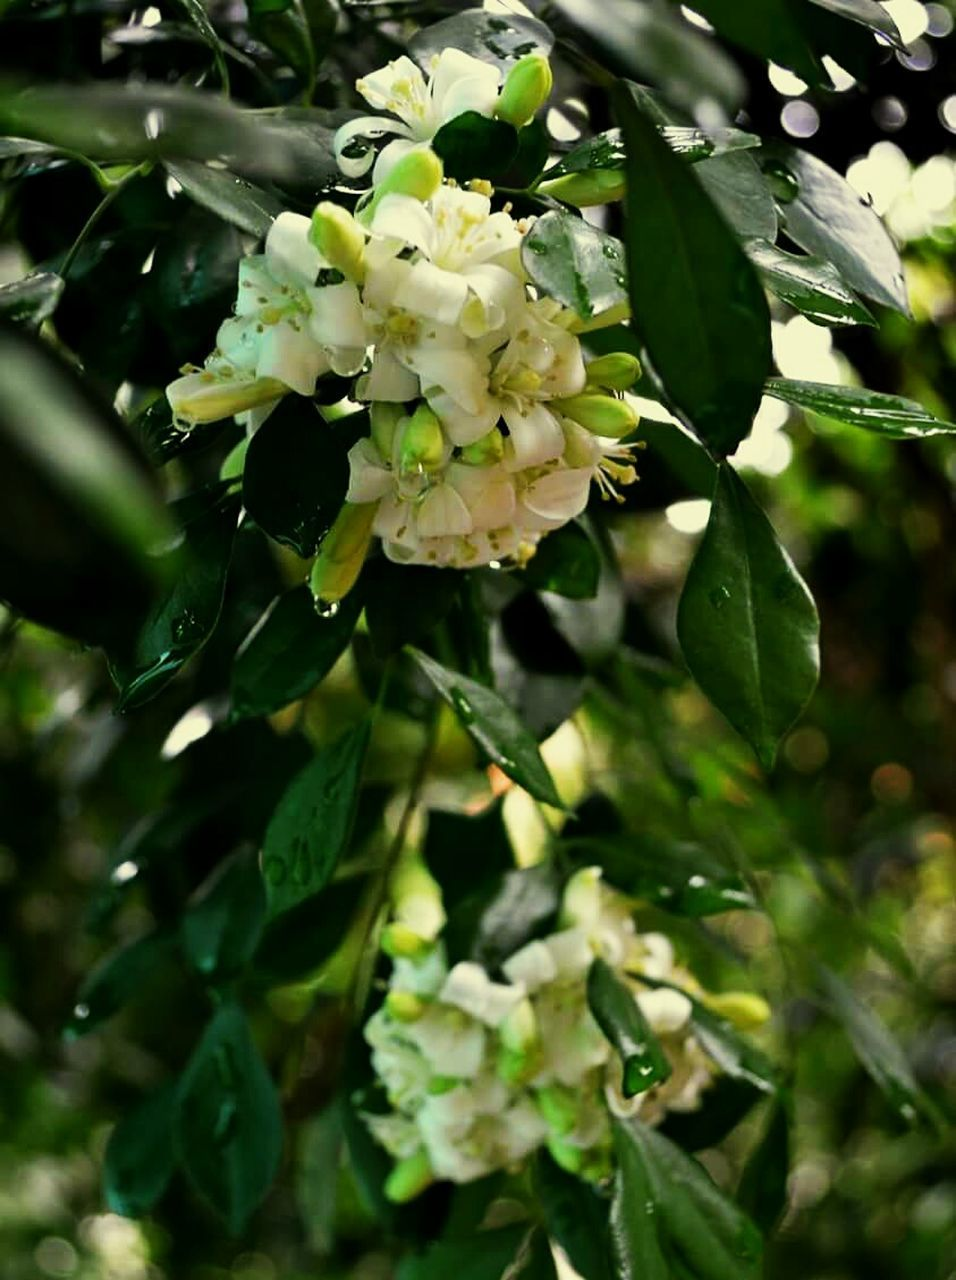 flower, fragility, growth, beauty in nature, freshness, nature, green color, white color, plant, blossom, no people, petal, day, leaf, outdoors, close-up, scented, flower head, branch, tree